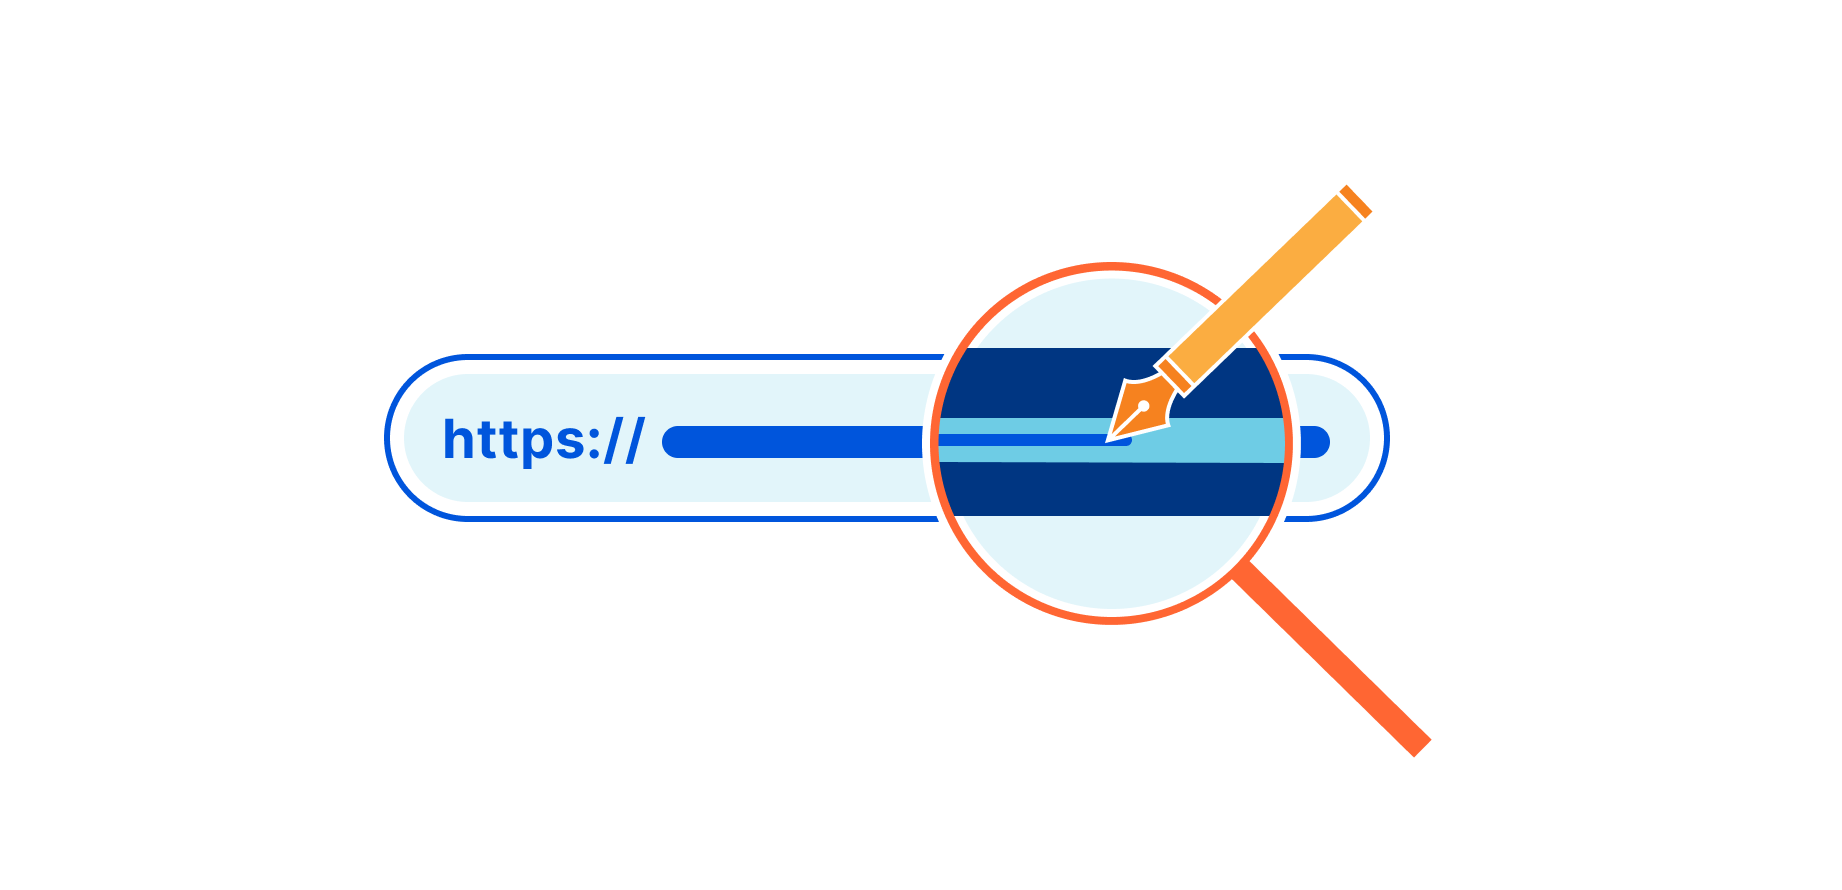 Dynamic URL Rewriting at the edge with Cloudflare